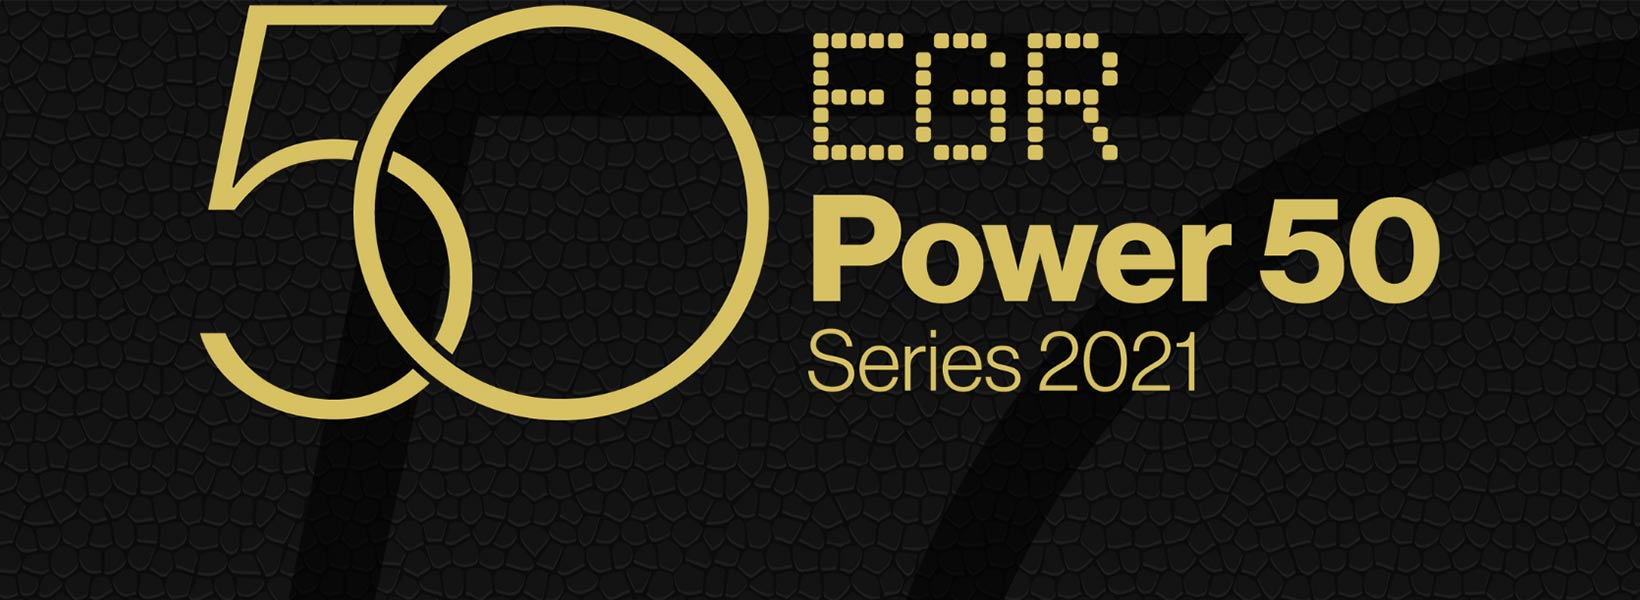 EGR Power 50 series